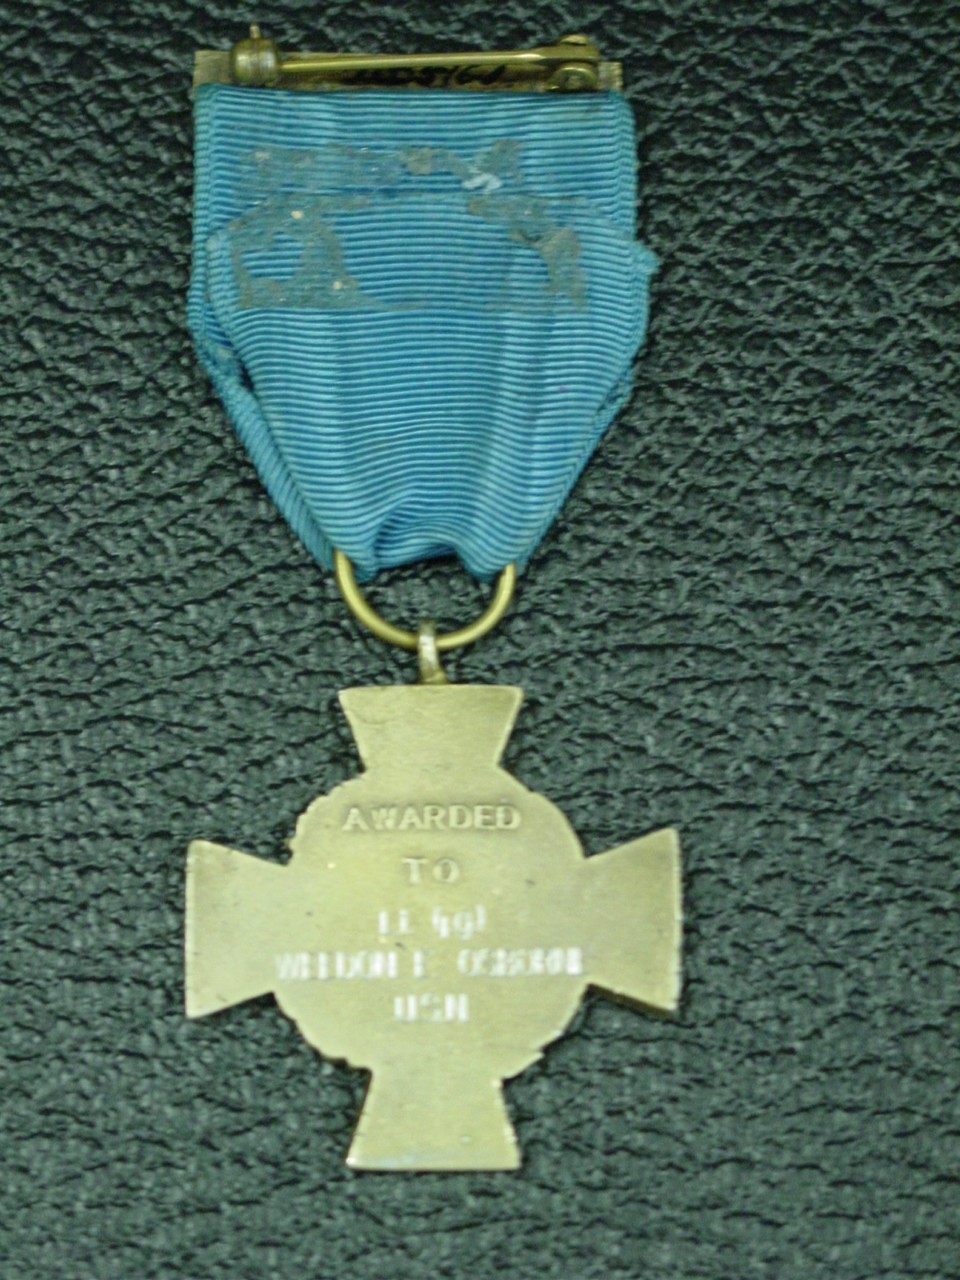 Weedon Osborne Medal of Honor back view